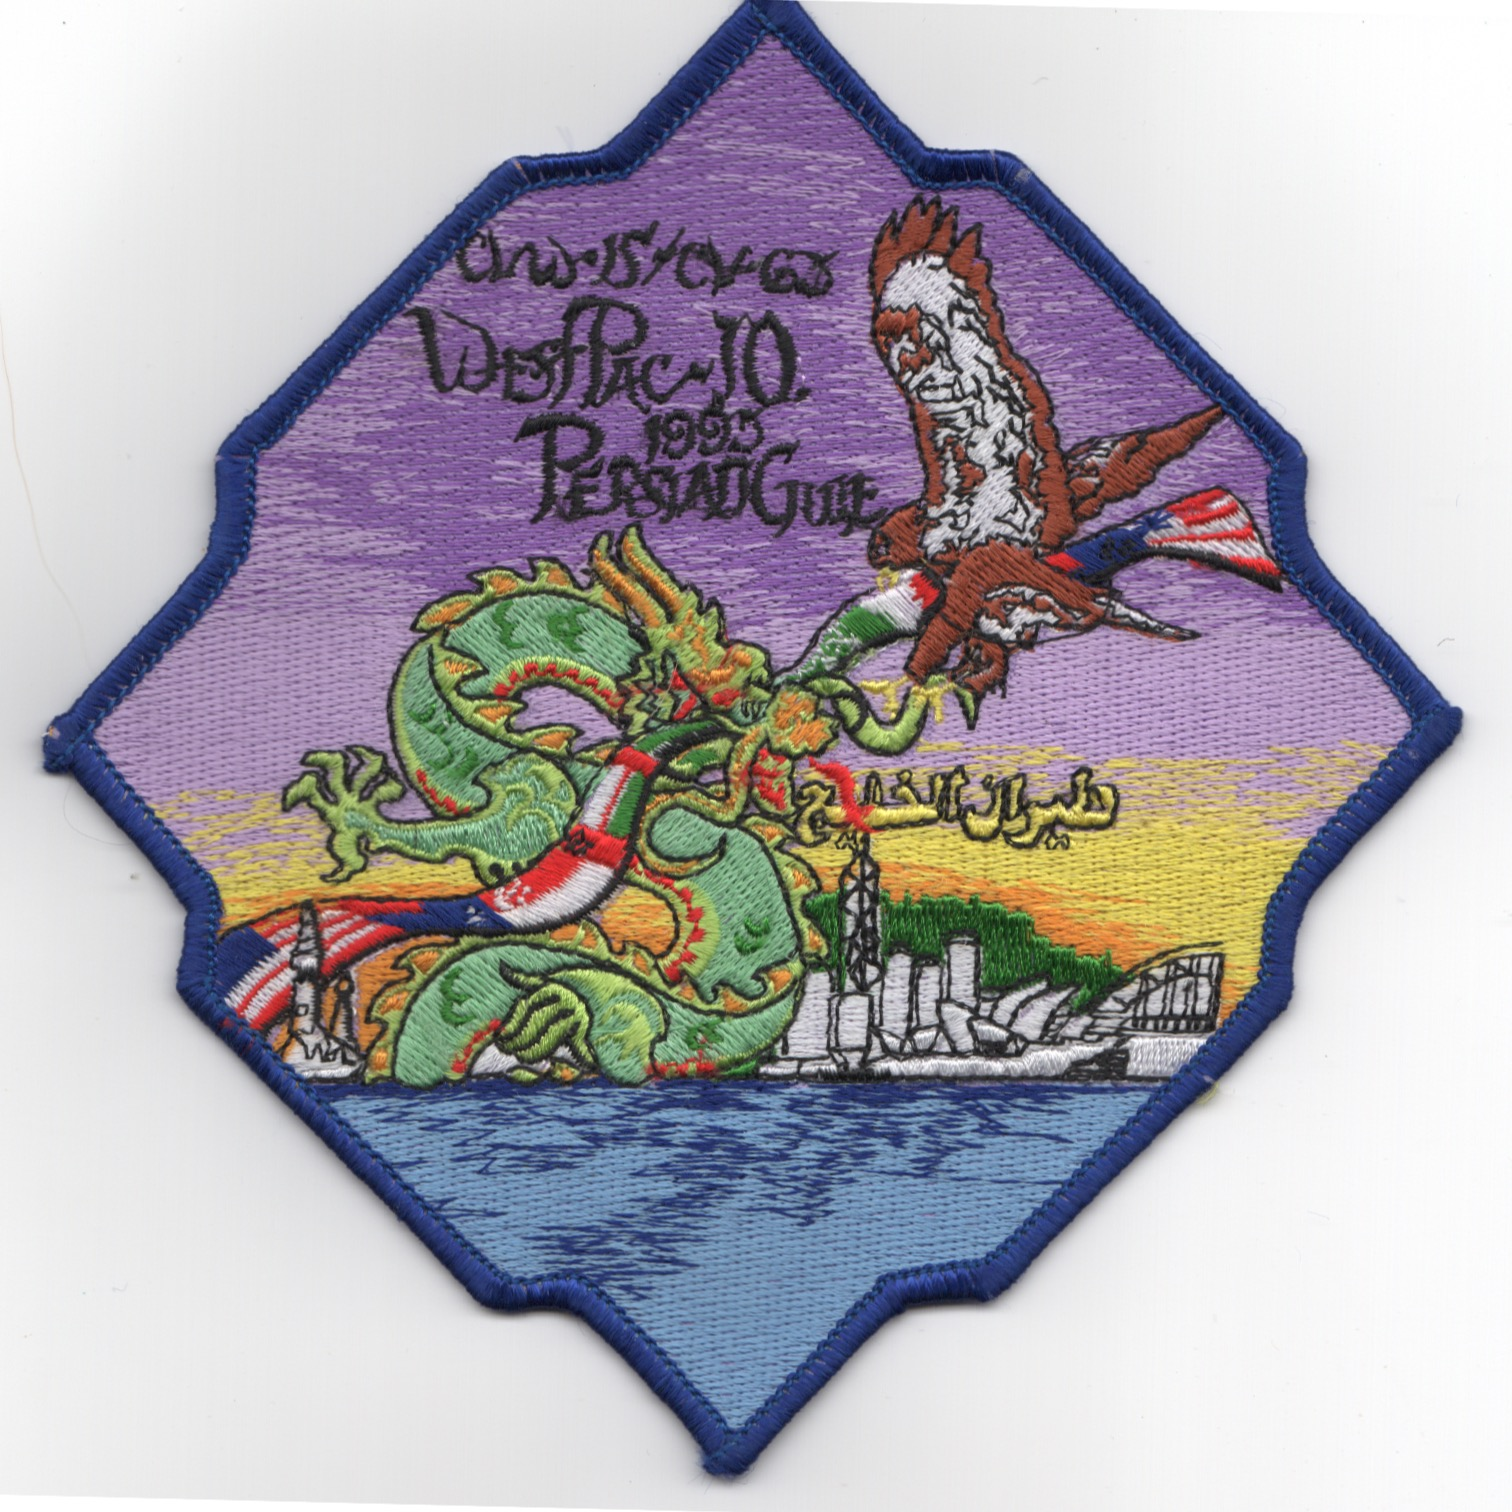 214) CV-63 1995 'PERSIAN GULF' Patch